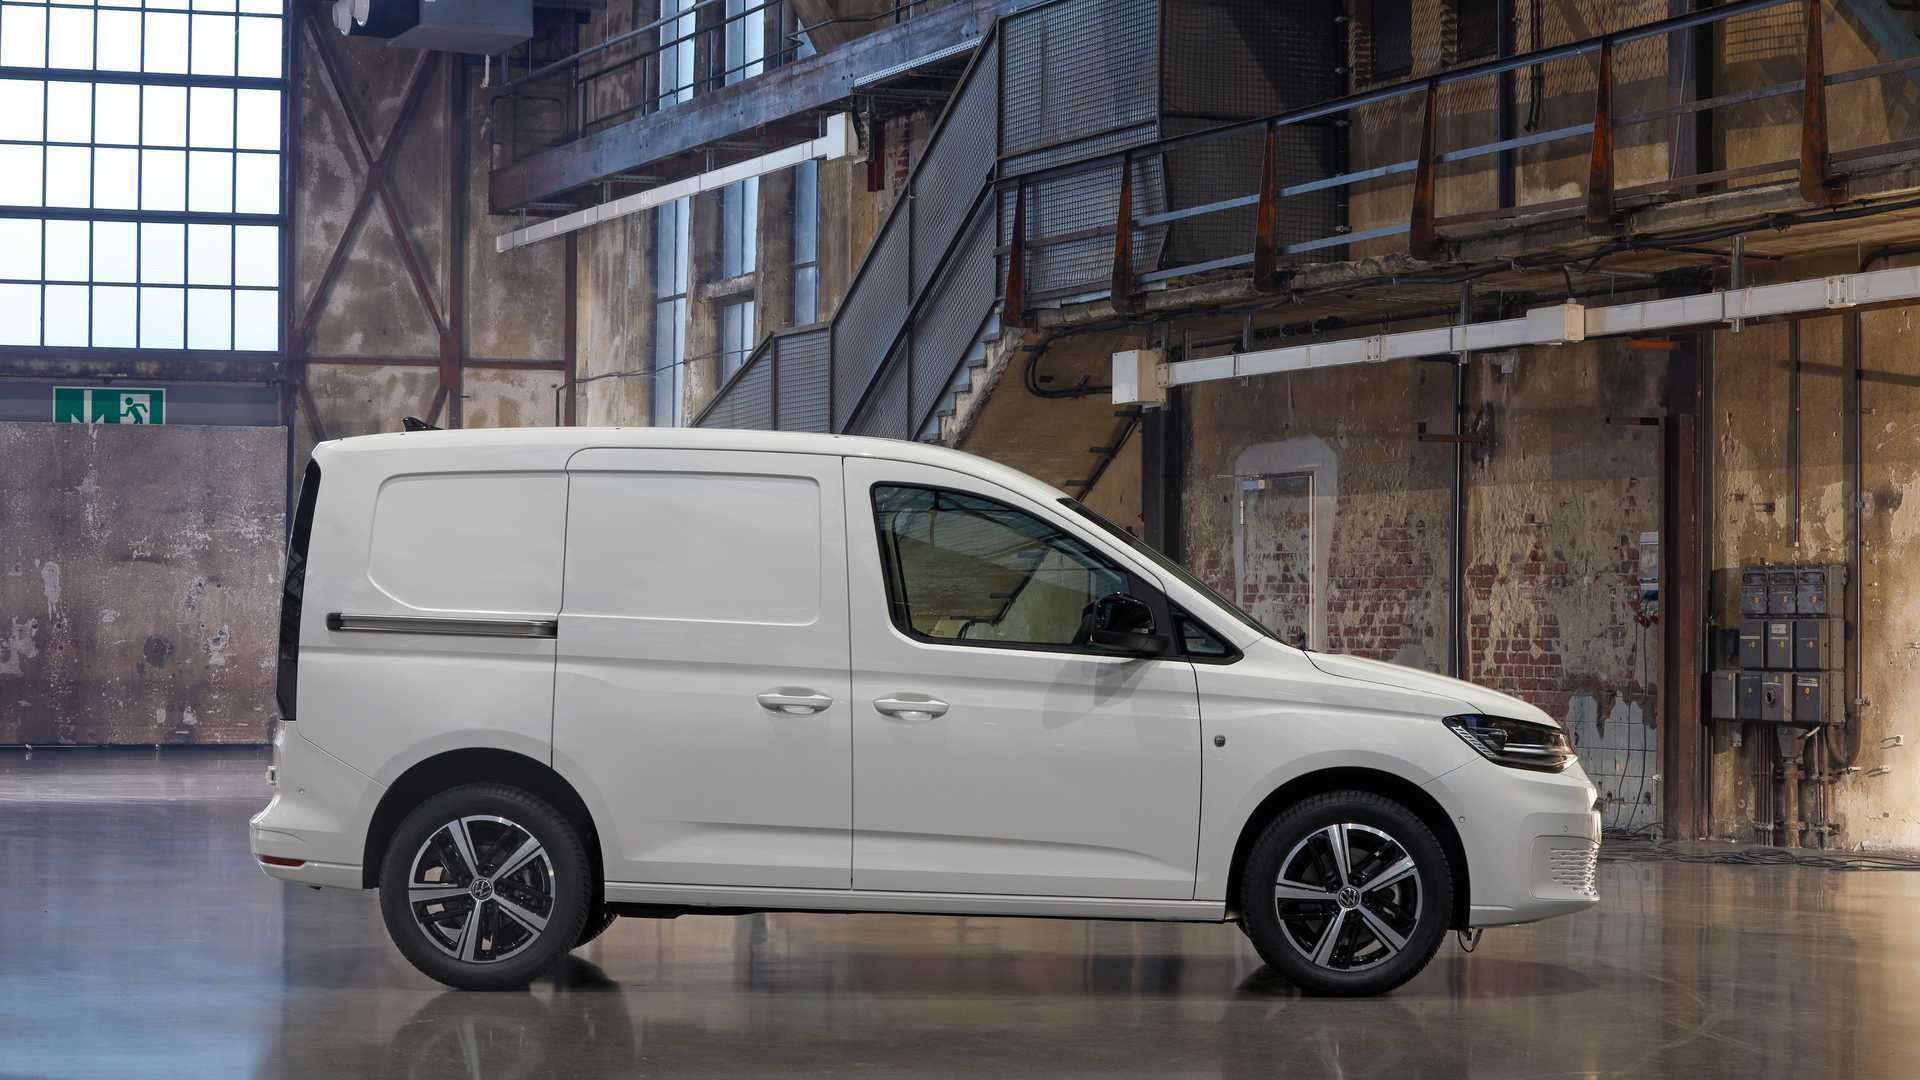 vw-caddy-cargo-2020-2